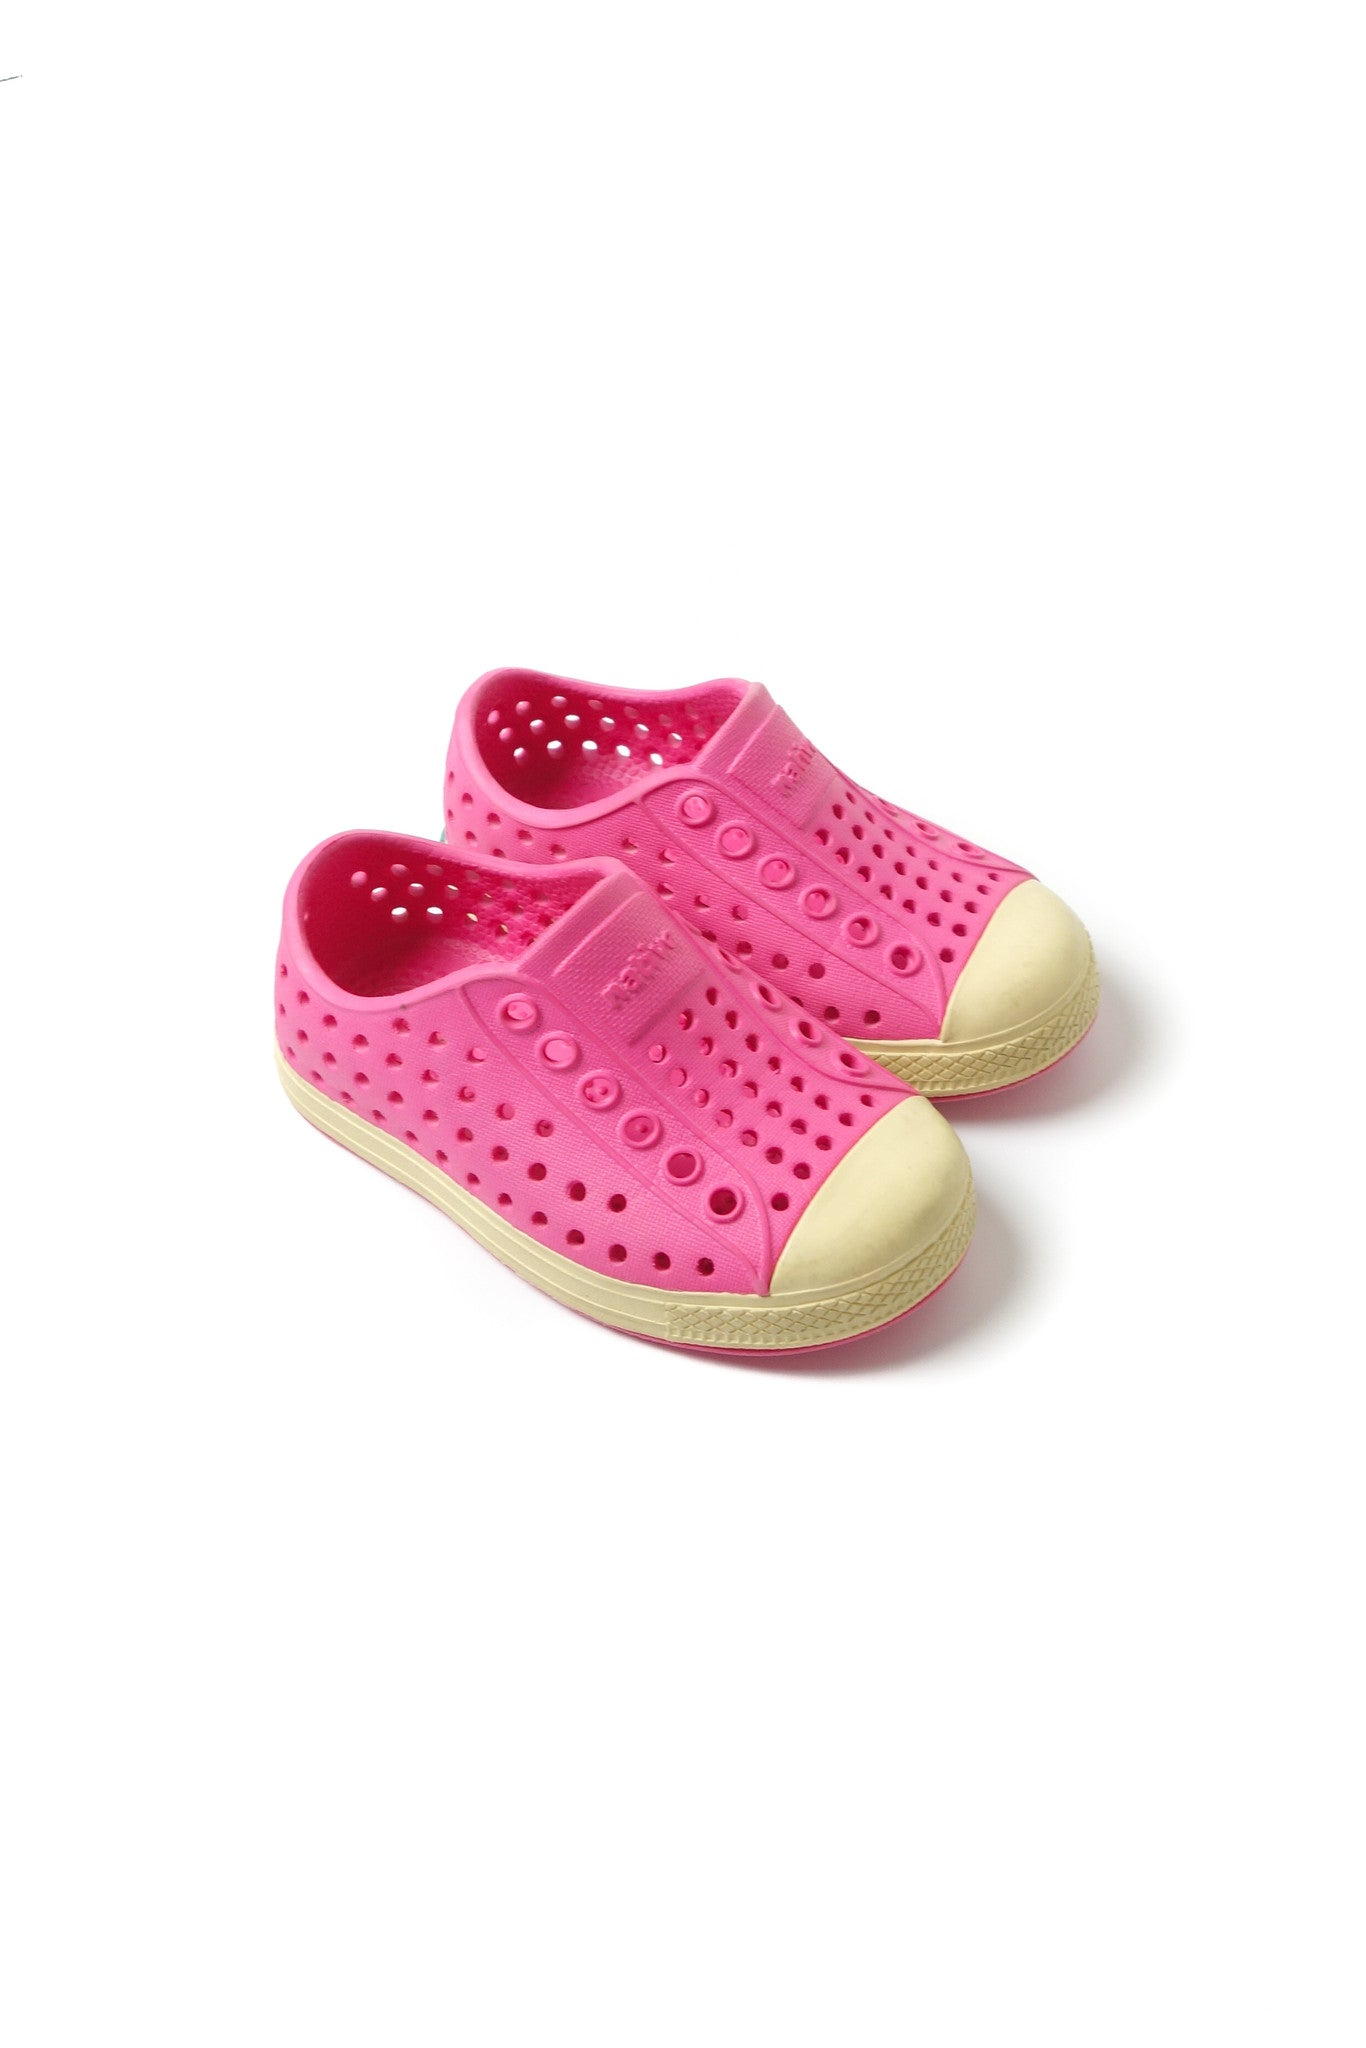 10001630 Native Shoes Baby~Shoes 12-18M (US 5) at Retykle